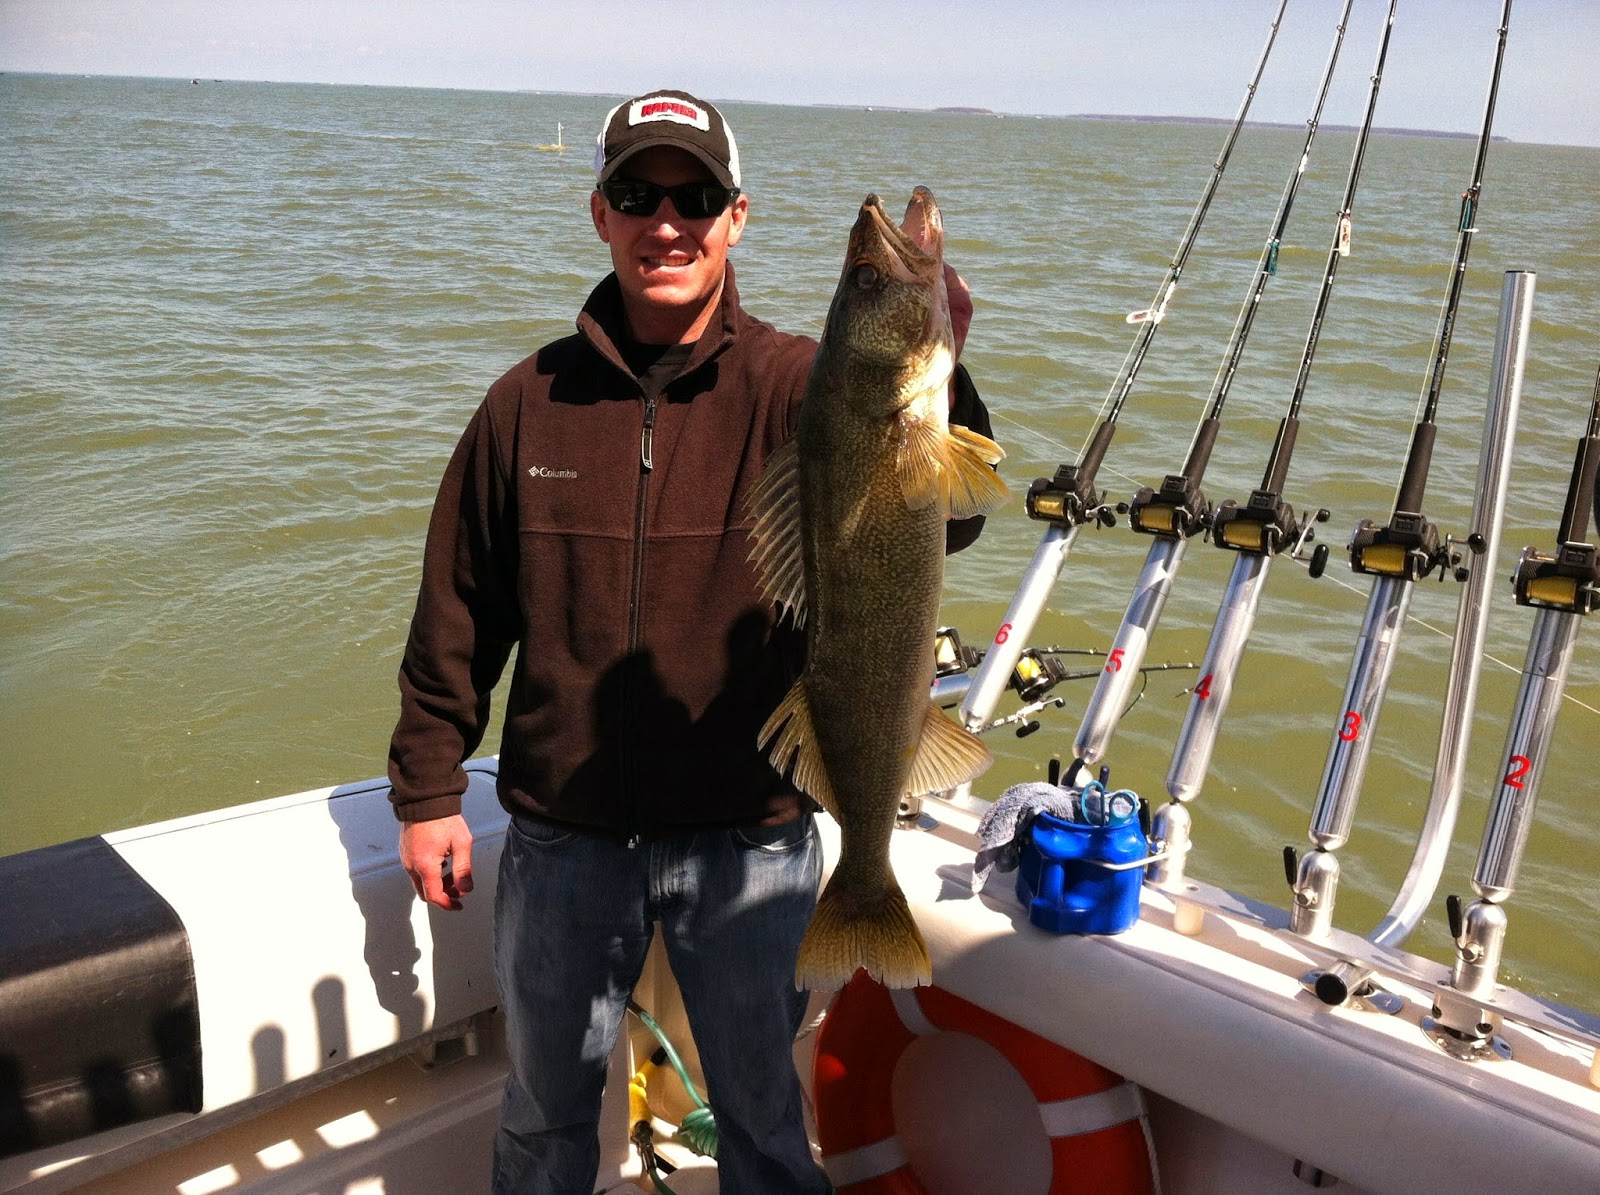 Lake erie walleye fishing reports great day first day on for Odnr fishing report